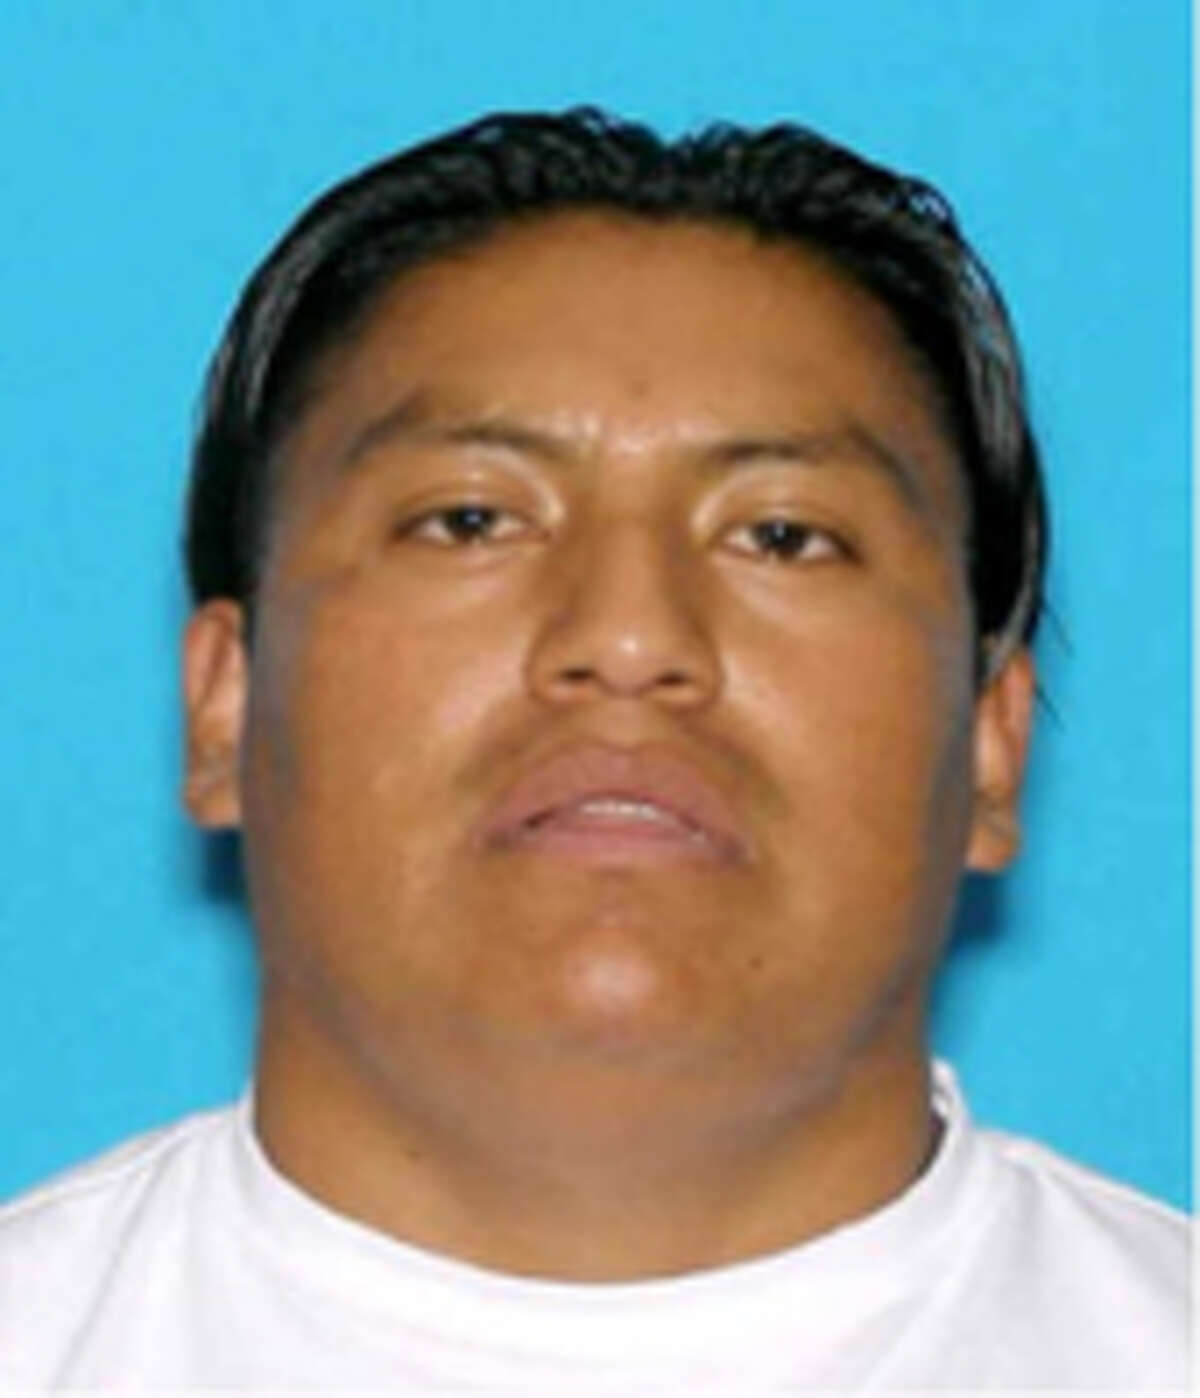 Gilberto Juarez-Santos, 31, has been charged with drug crimes in the federal court for Western Washington. He was last known to be living in Bothell. Tips may be made to the U.S. Marshals Service at 877-926-8332 (877-WANTED2).